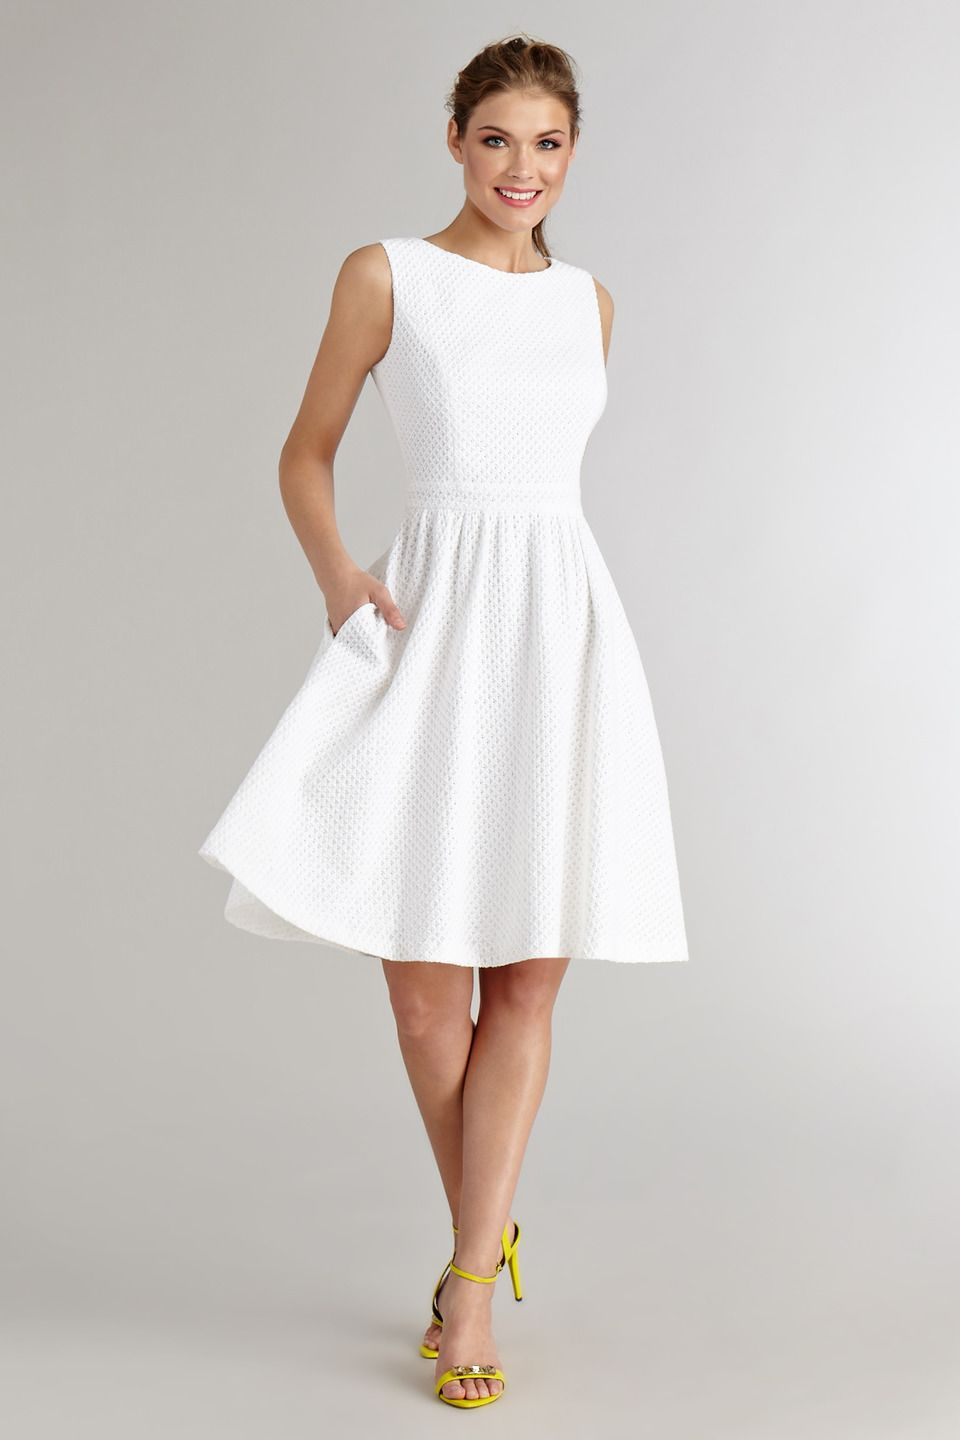 White dress bridal shower - Need A Lwd For Your Bridal Shower Or Rehearsal Dinner Our Collection Of Cute White